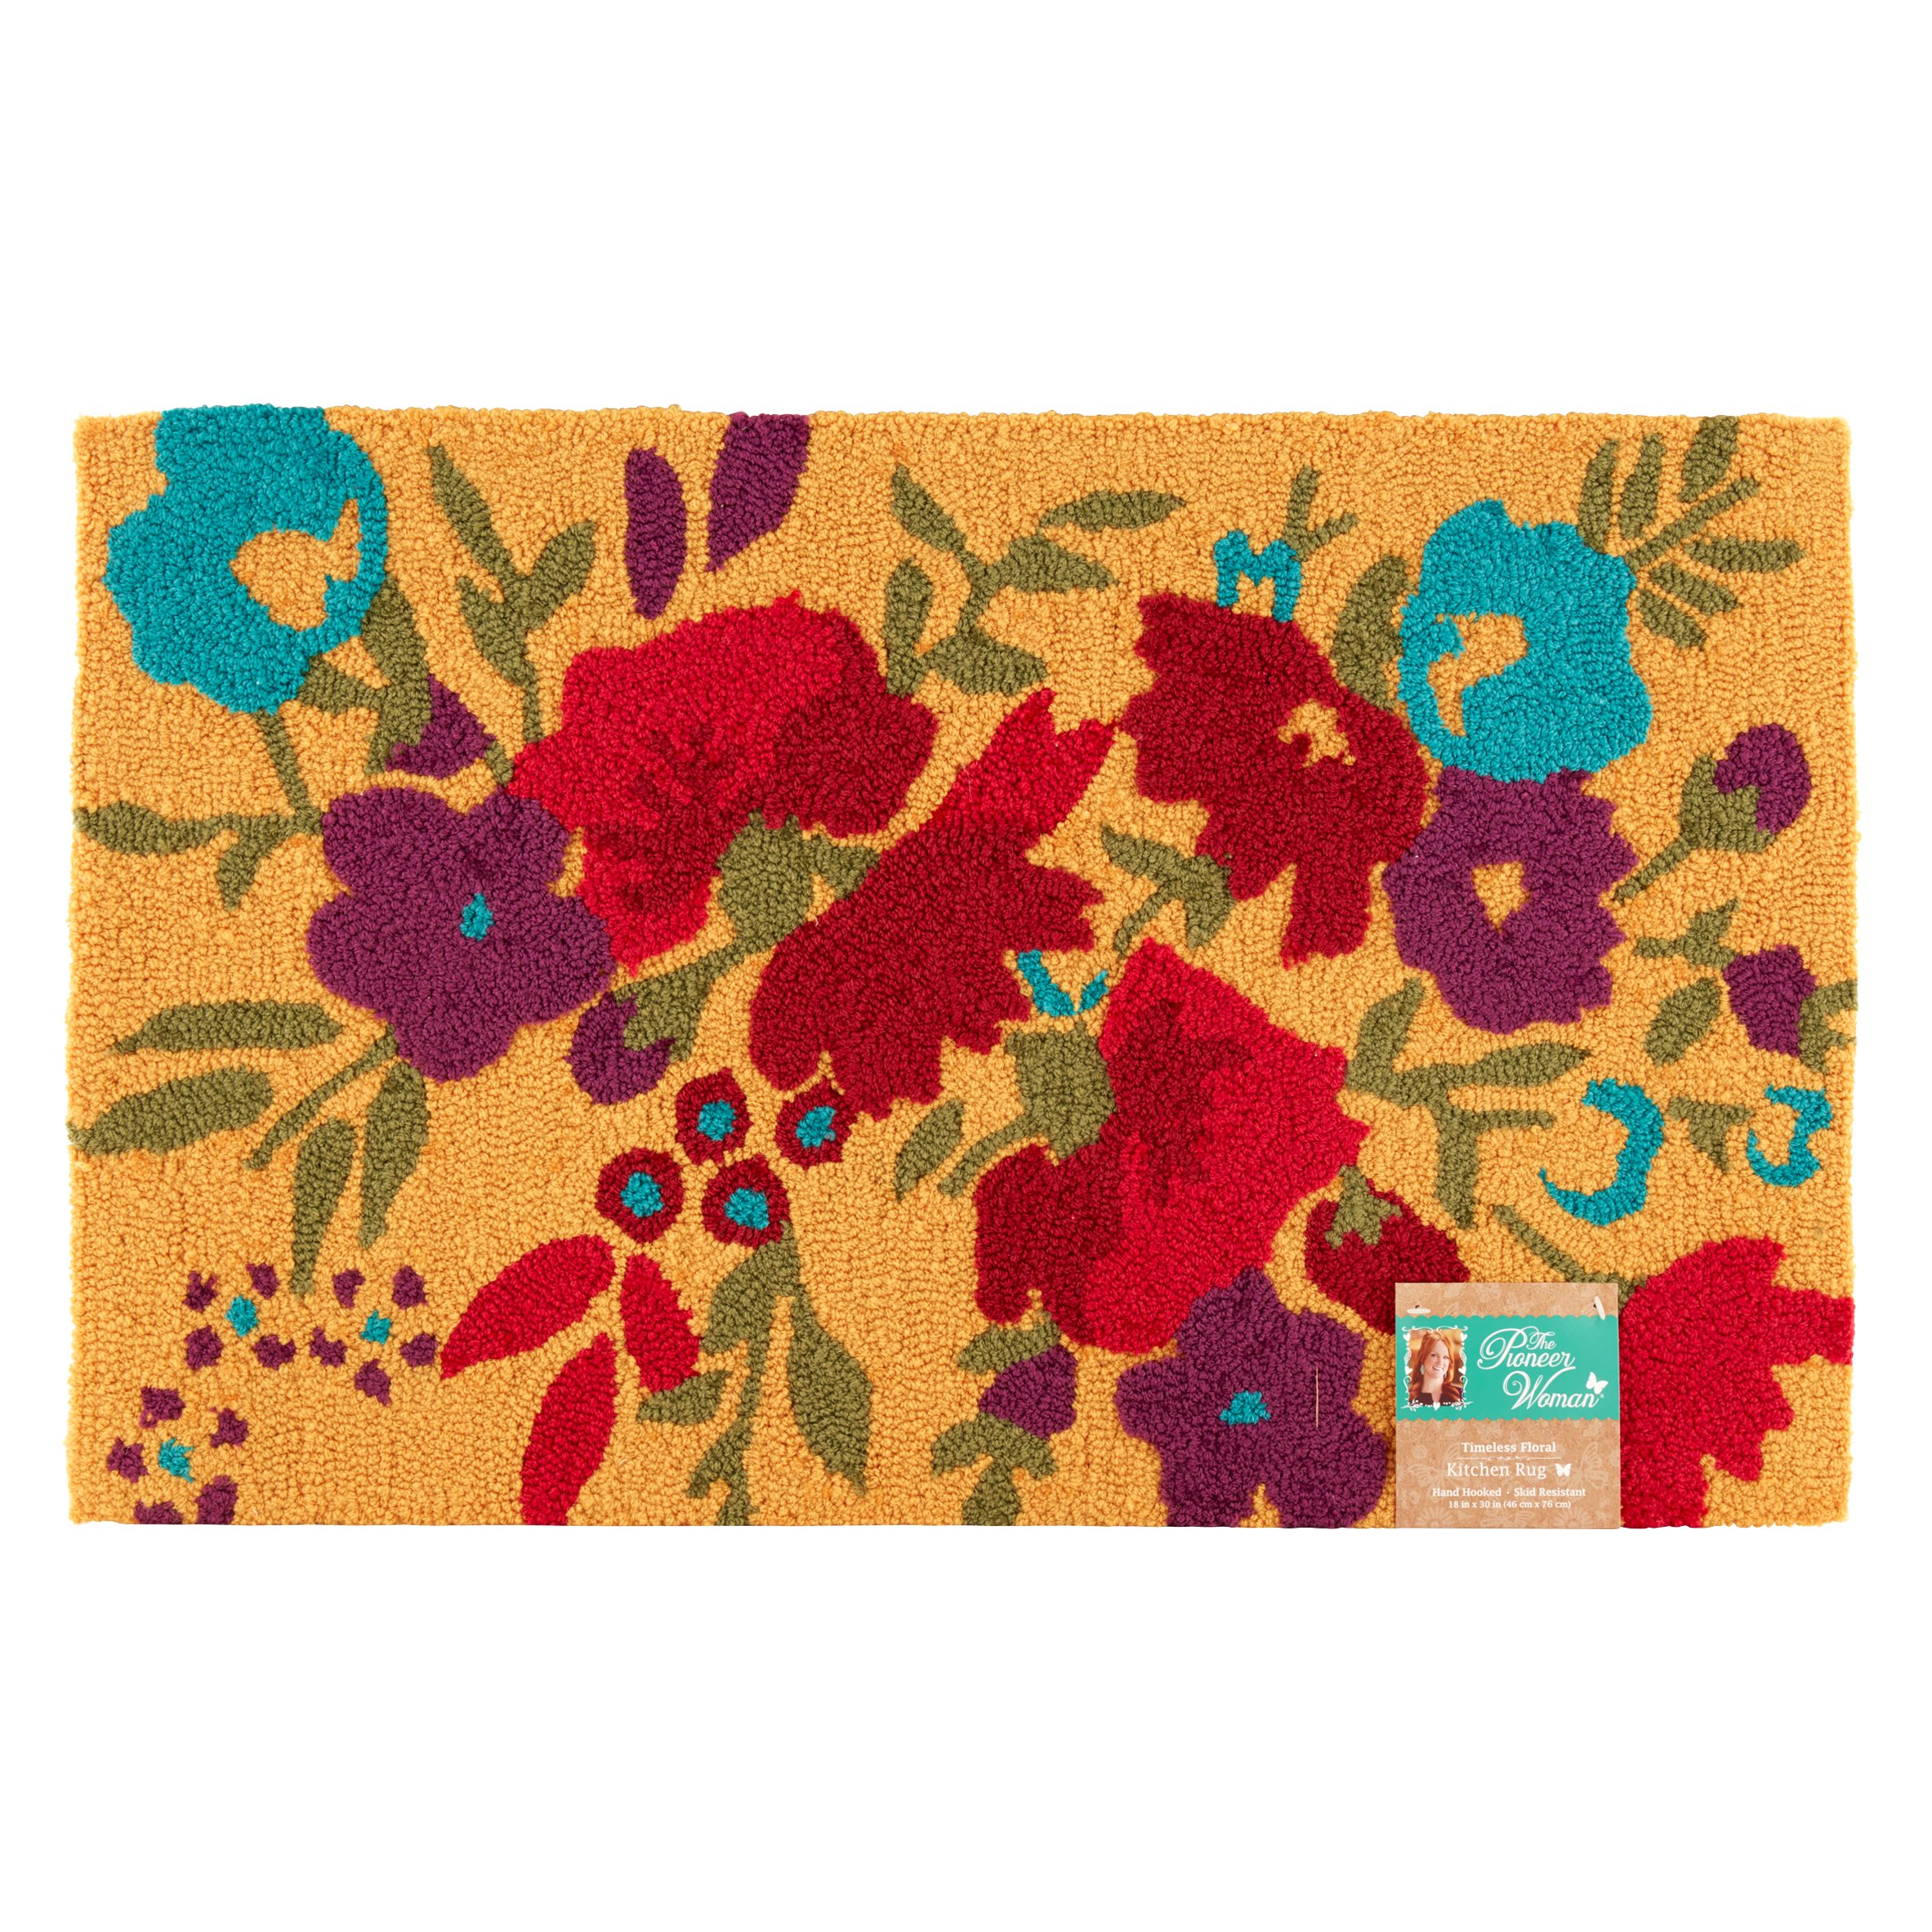 The Pioneer Woman Timeless Floral Kitchen Rug - Walmart.com